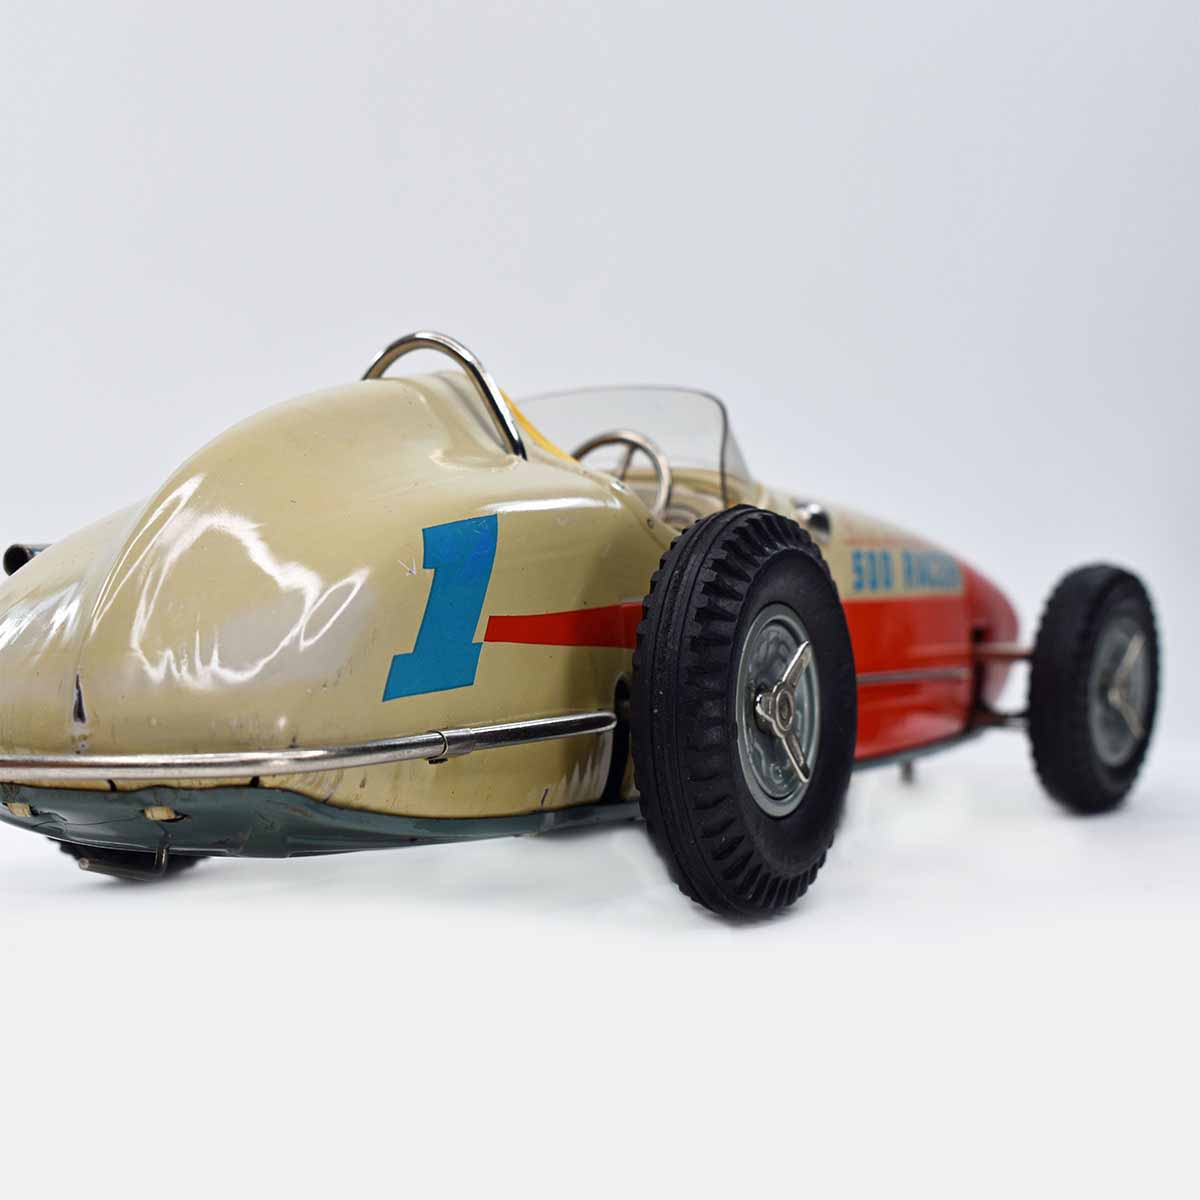 Sears Exclusive Indianapolis 500 Racer With Built In Jacks in Original Box